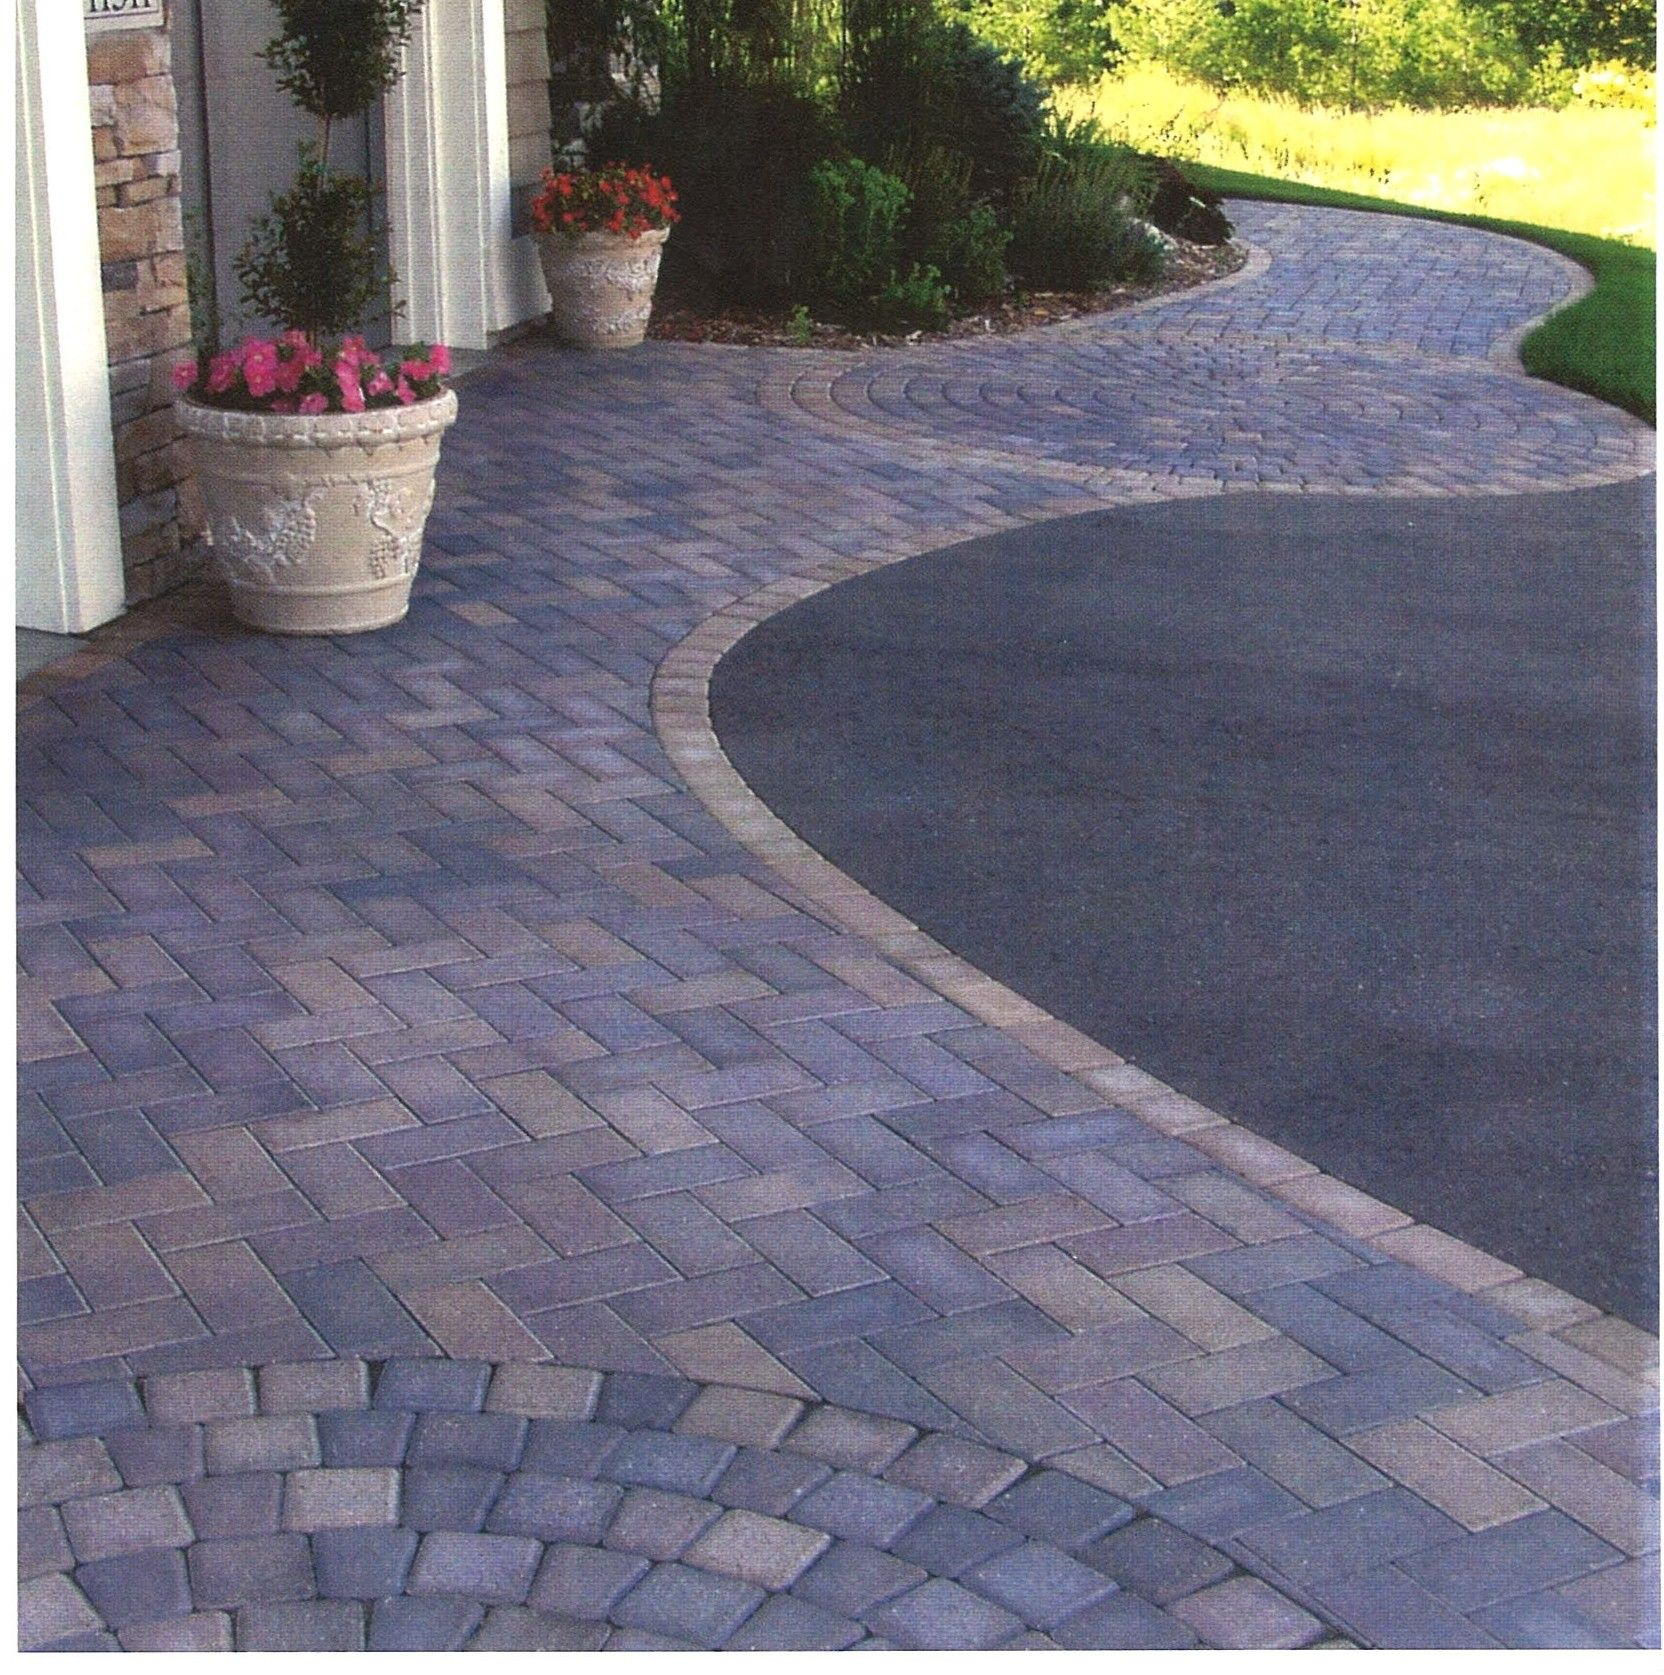 Driveway Design Pictures From Central New Jersey Driveway Design Driveway Landscaping Driveway